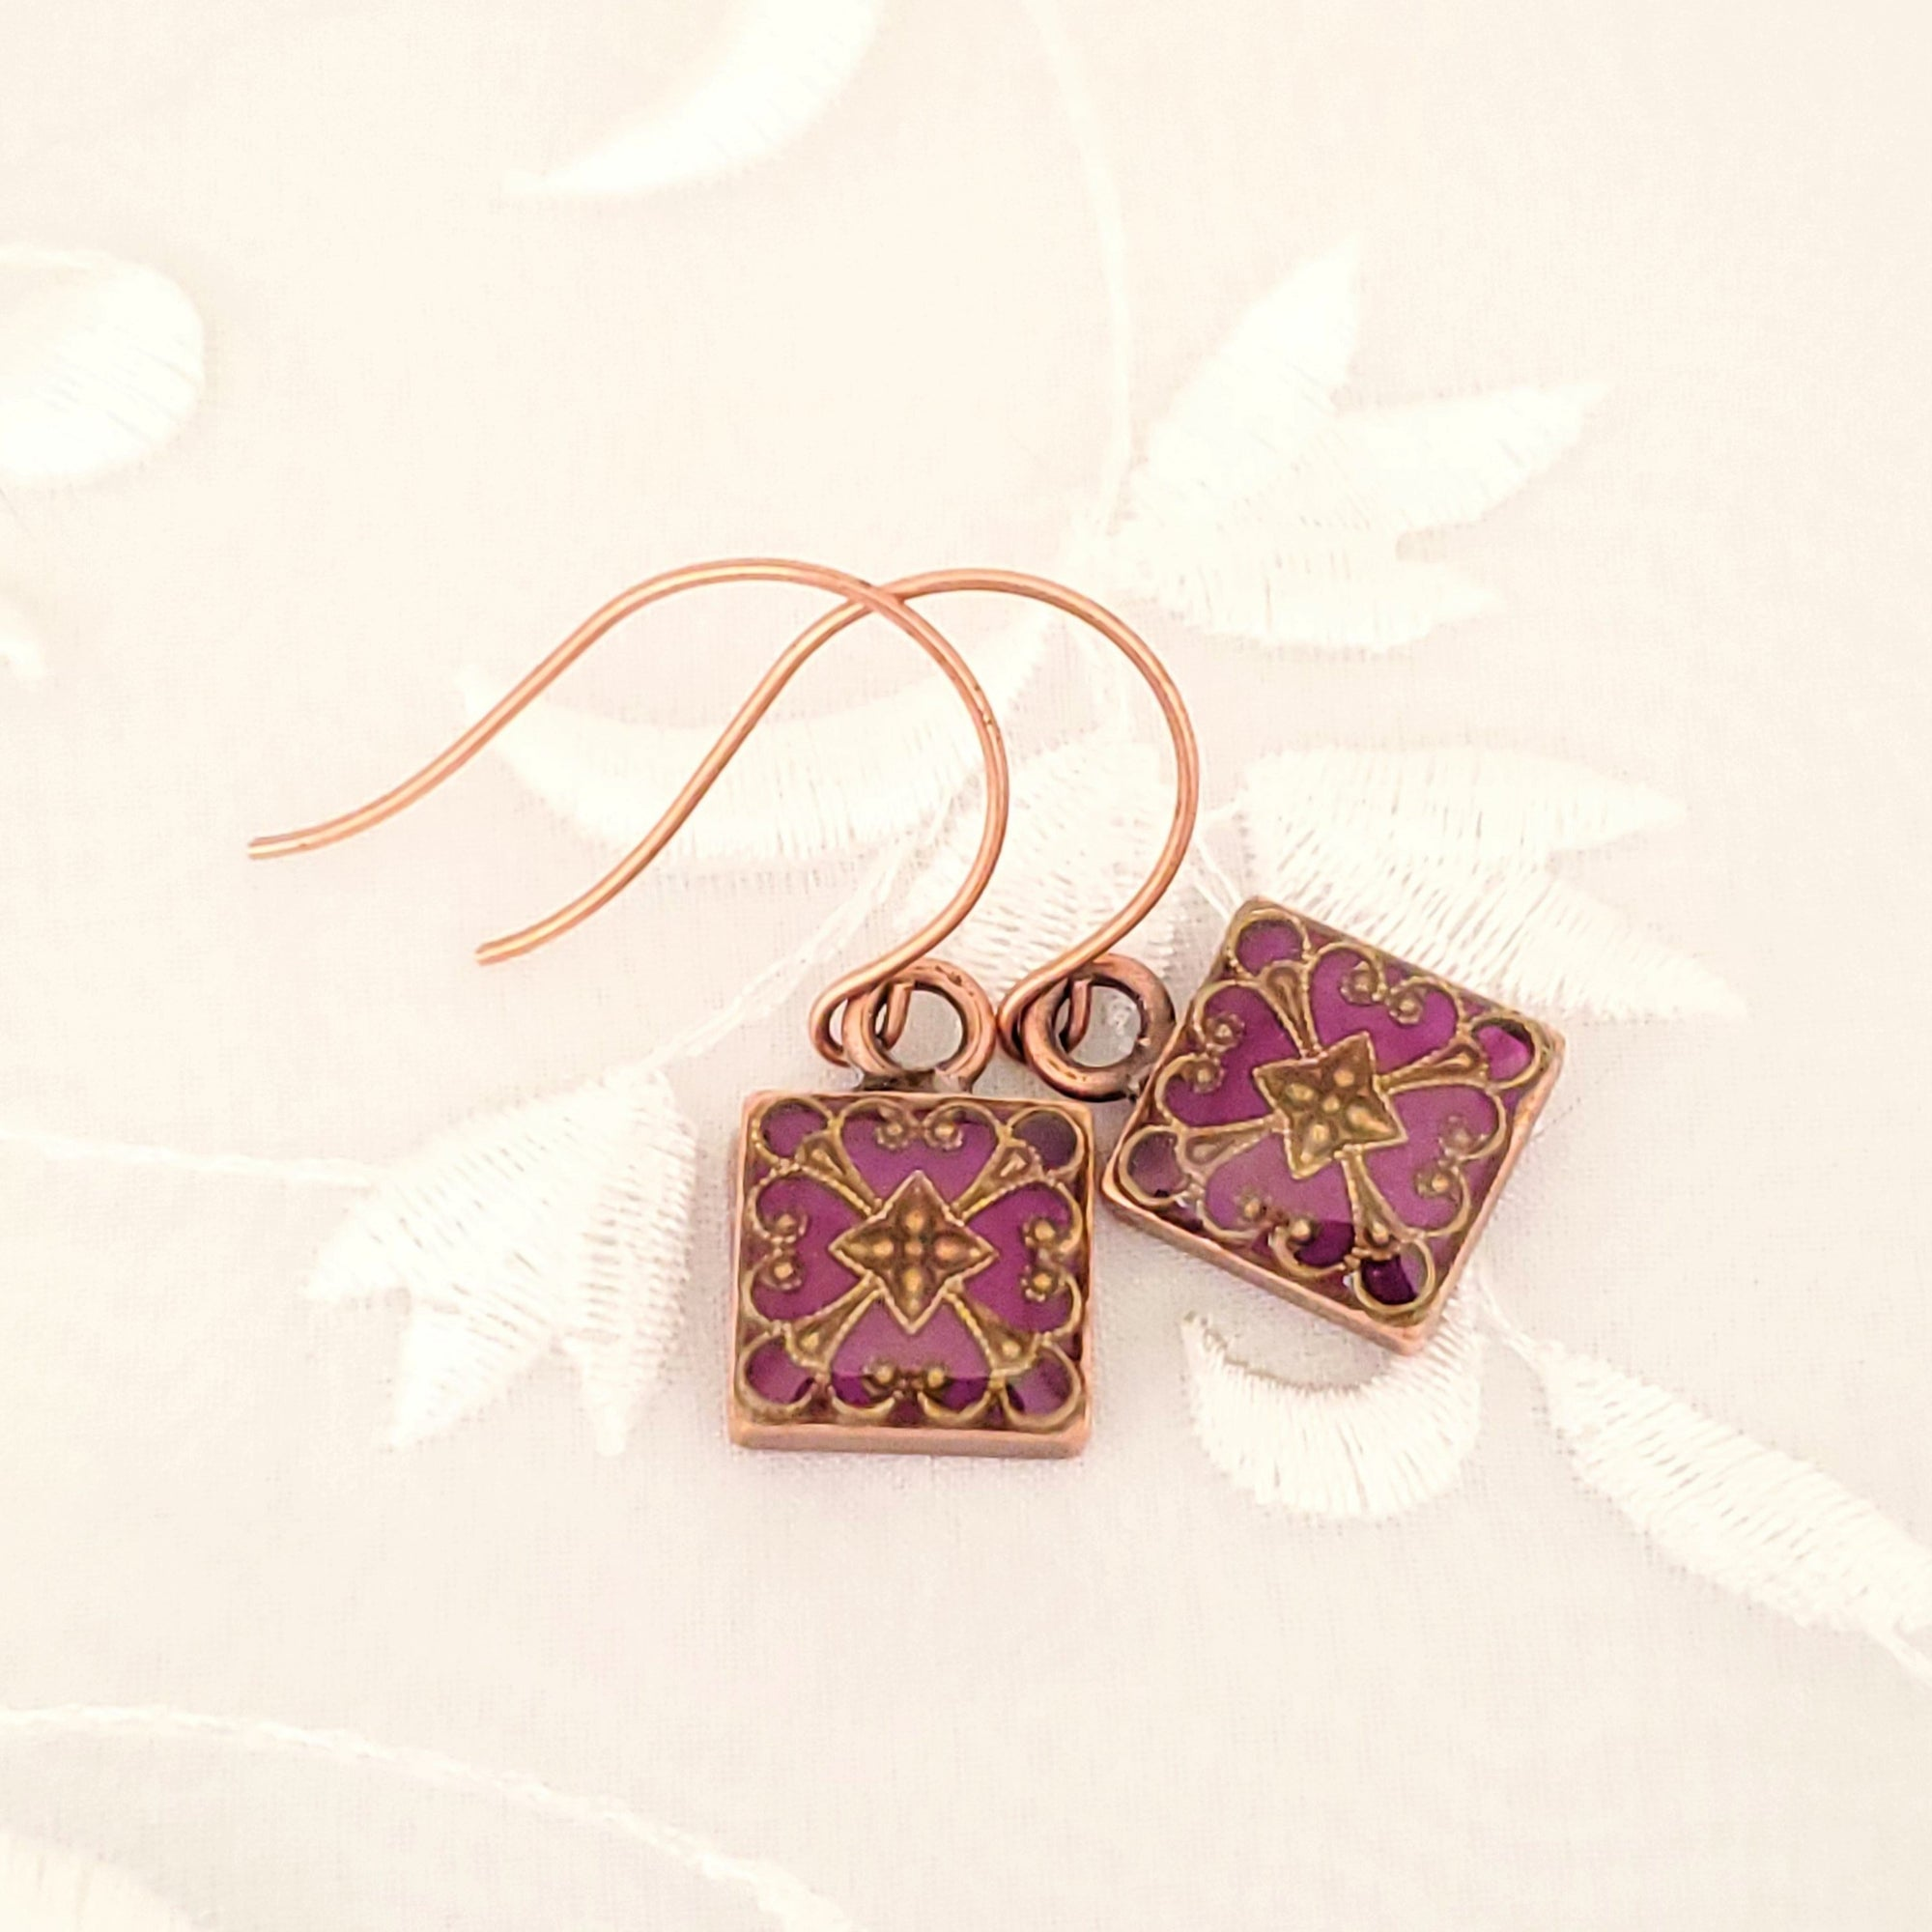 Antique Copper Square Earrings with Filigree and Purple Resin